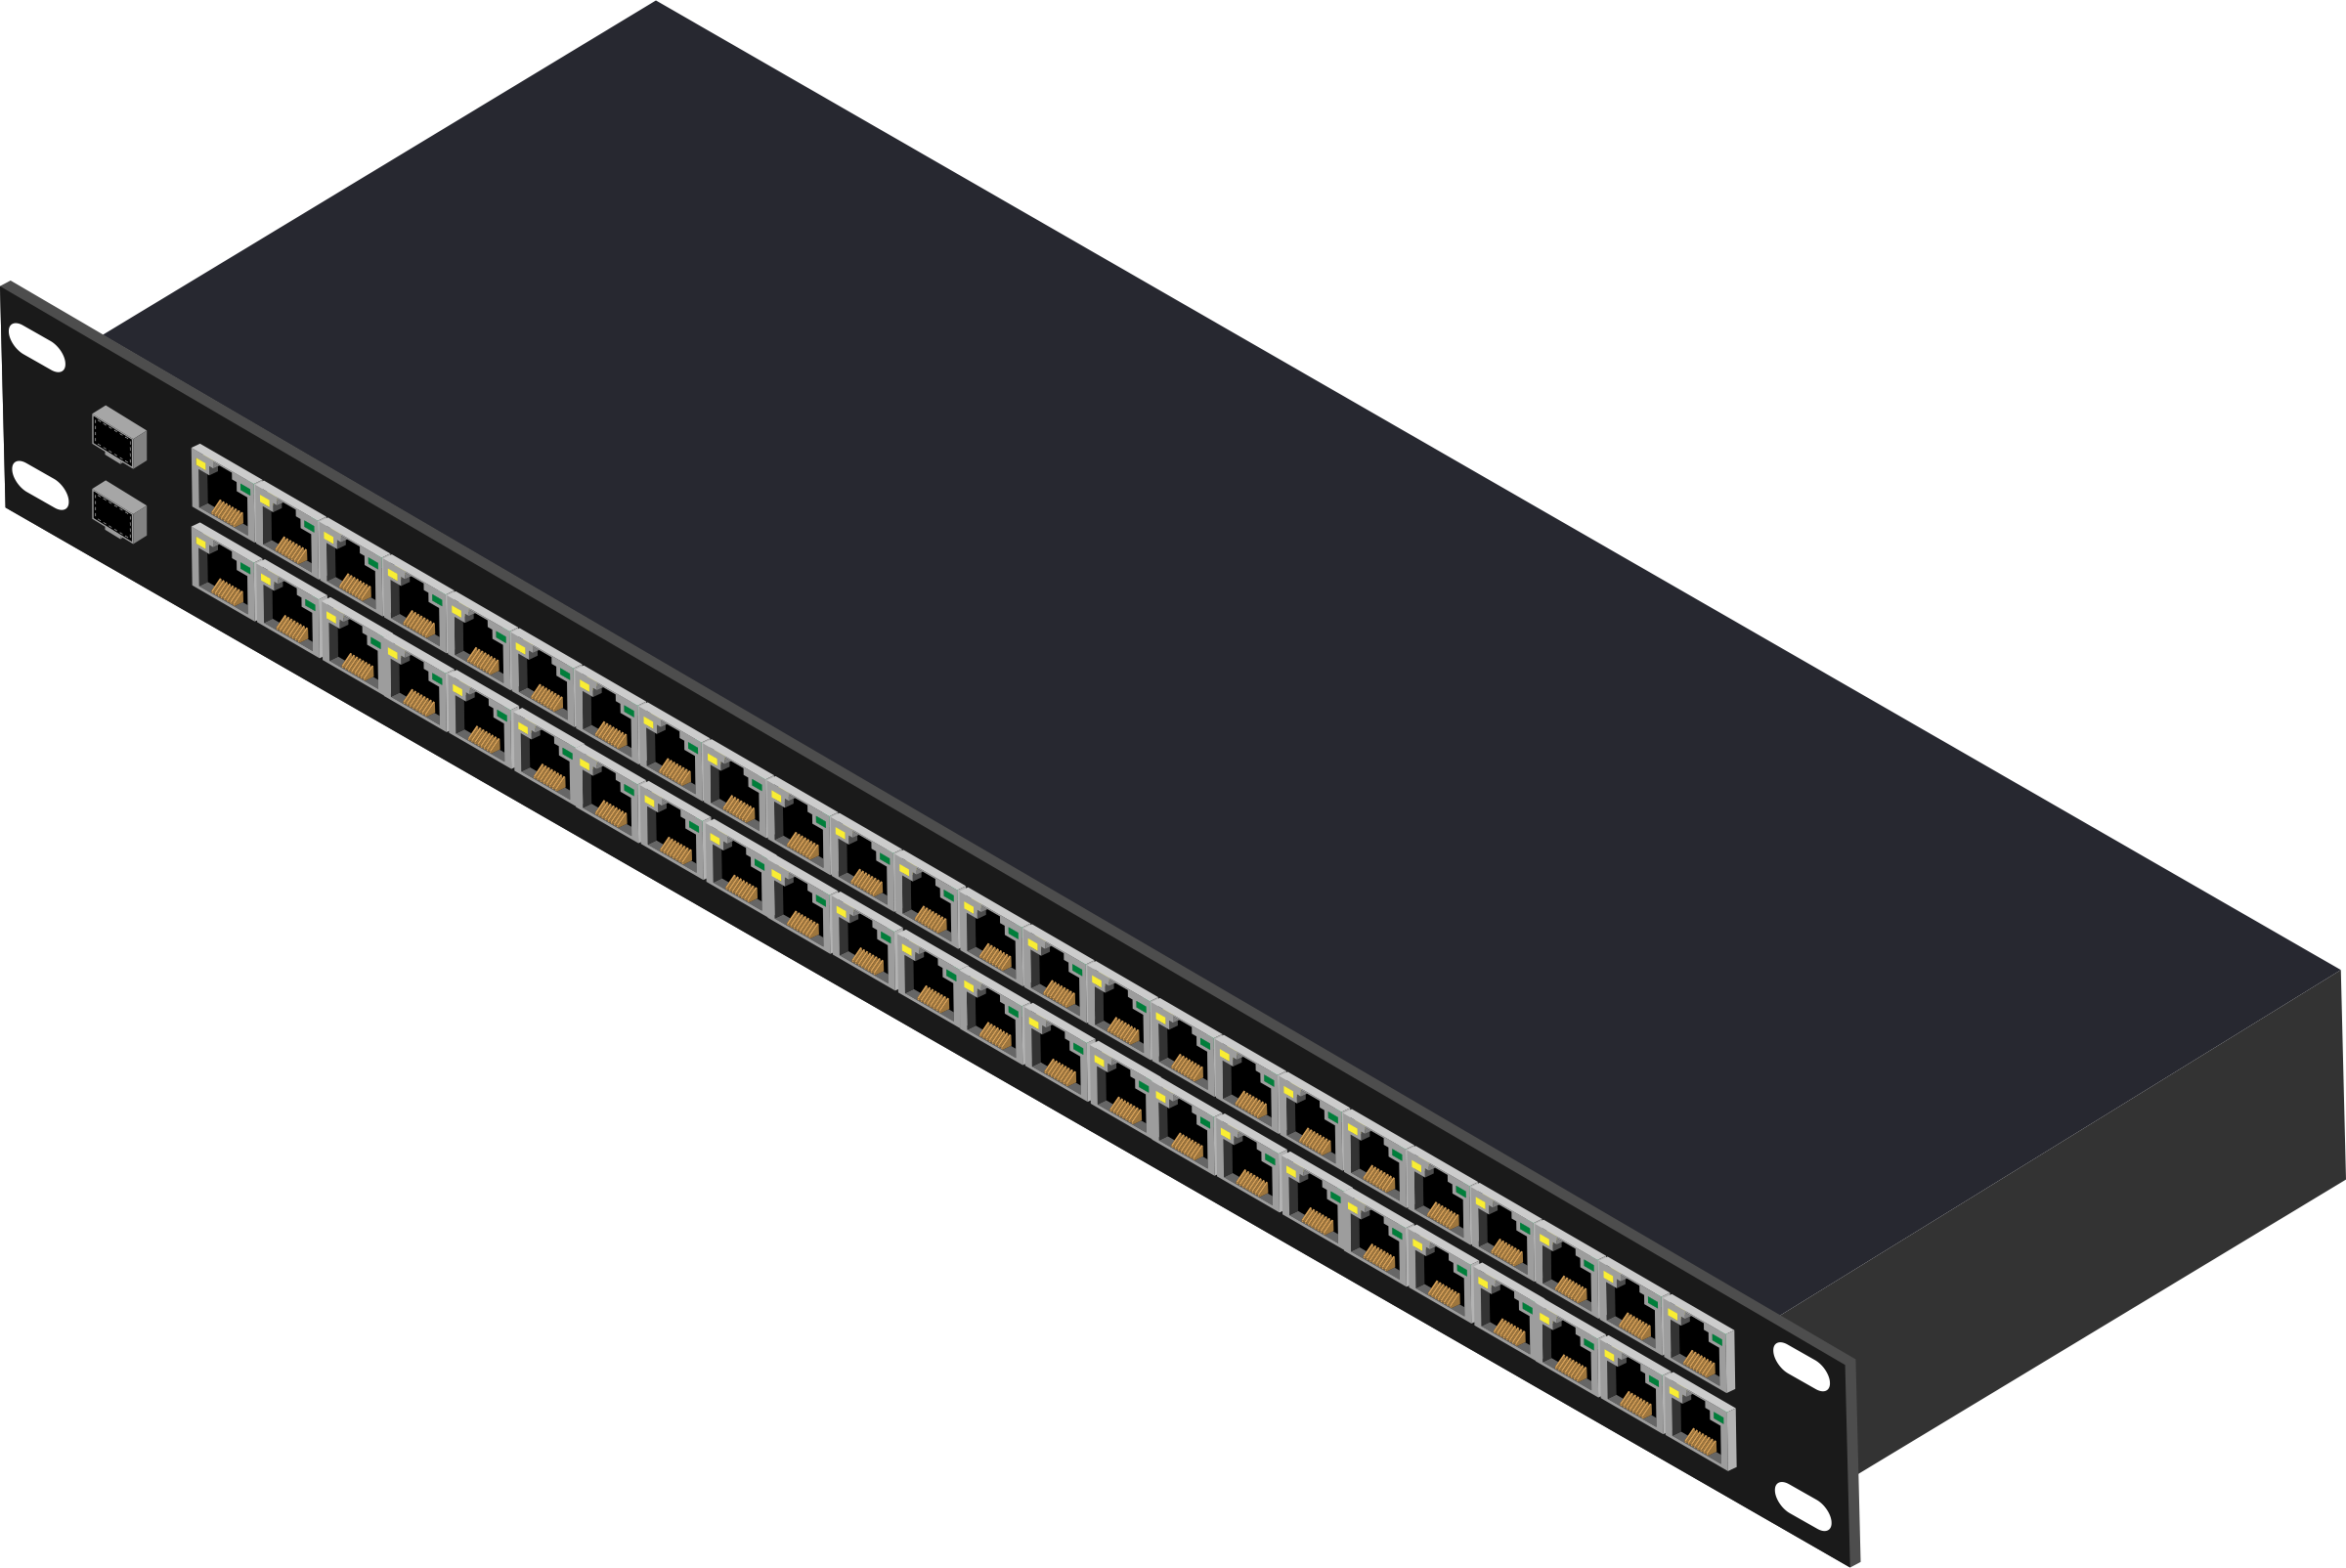 48 Port Switch by Enriq766